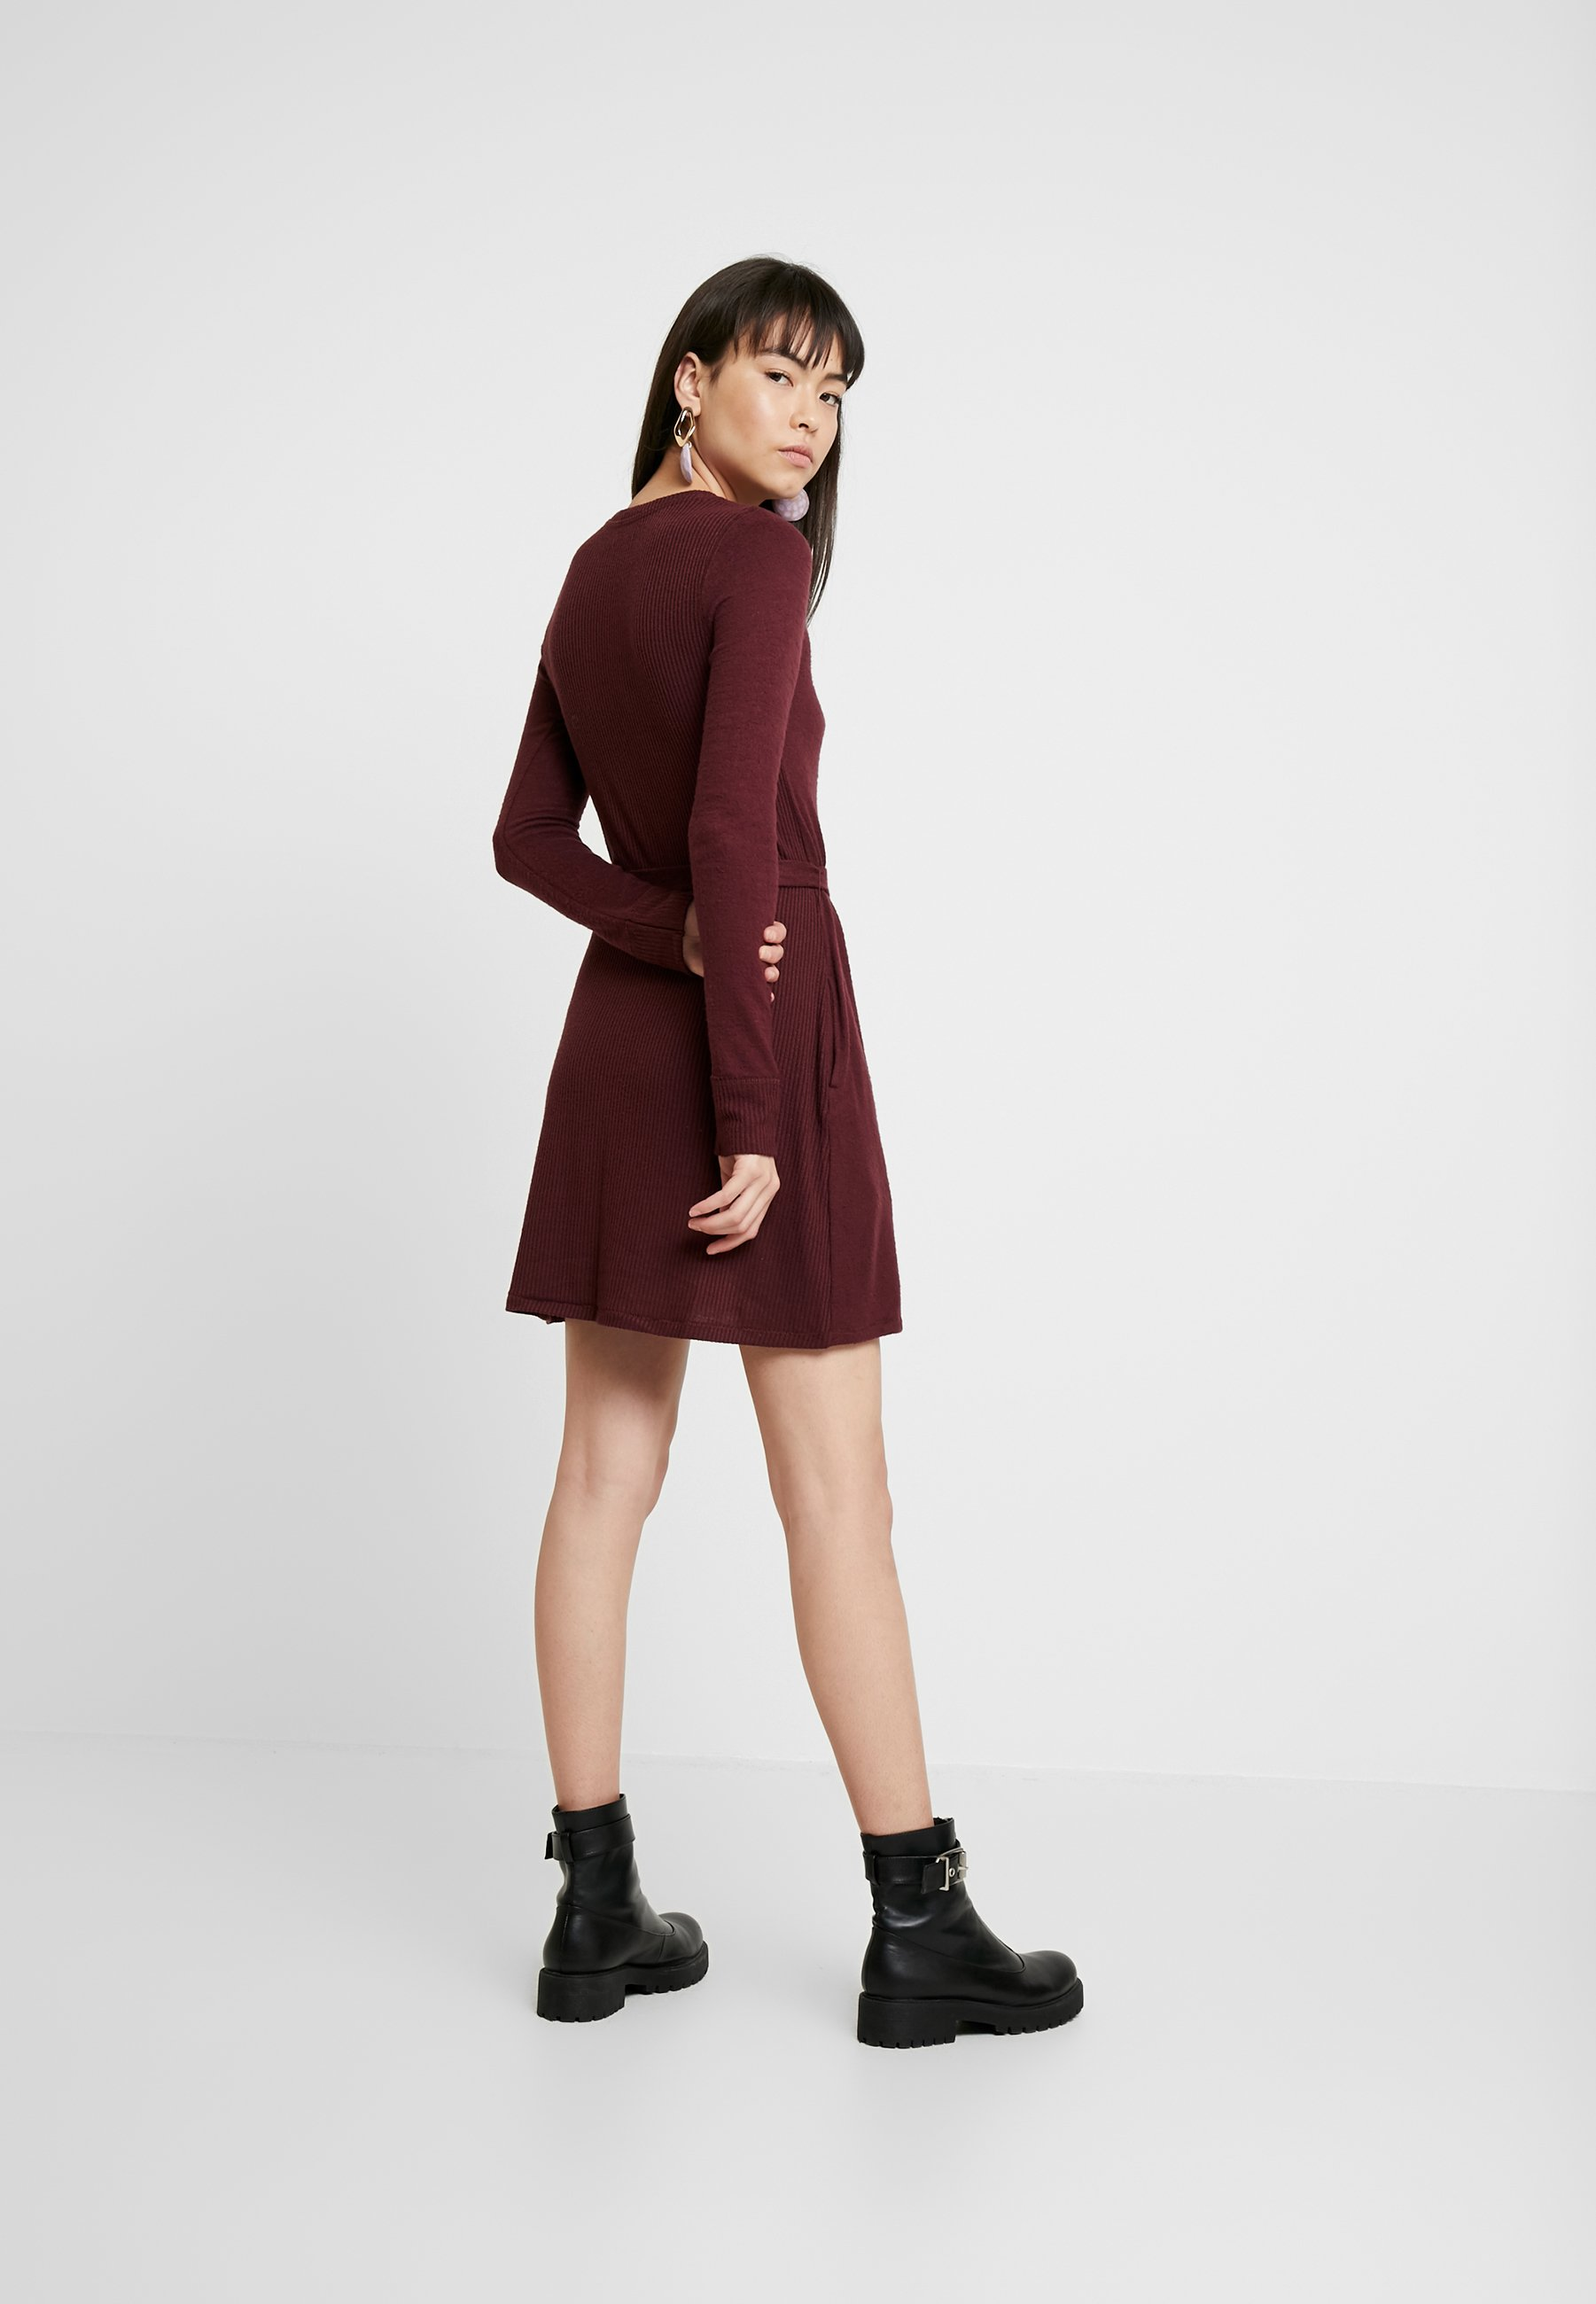 Abercrombie & Fitch Cozy Dress - Jumper Burg